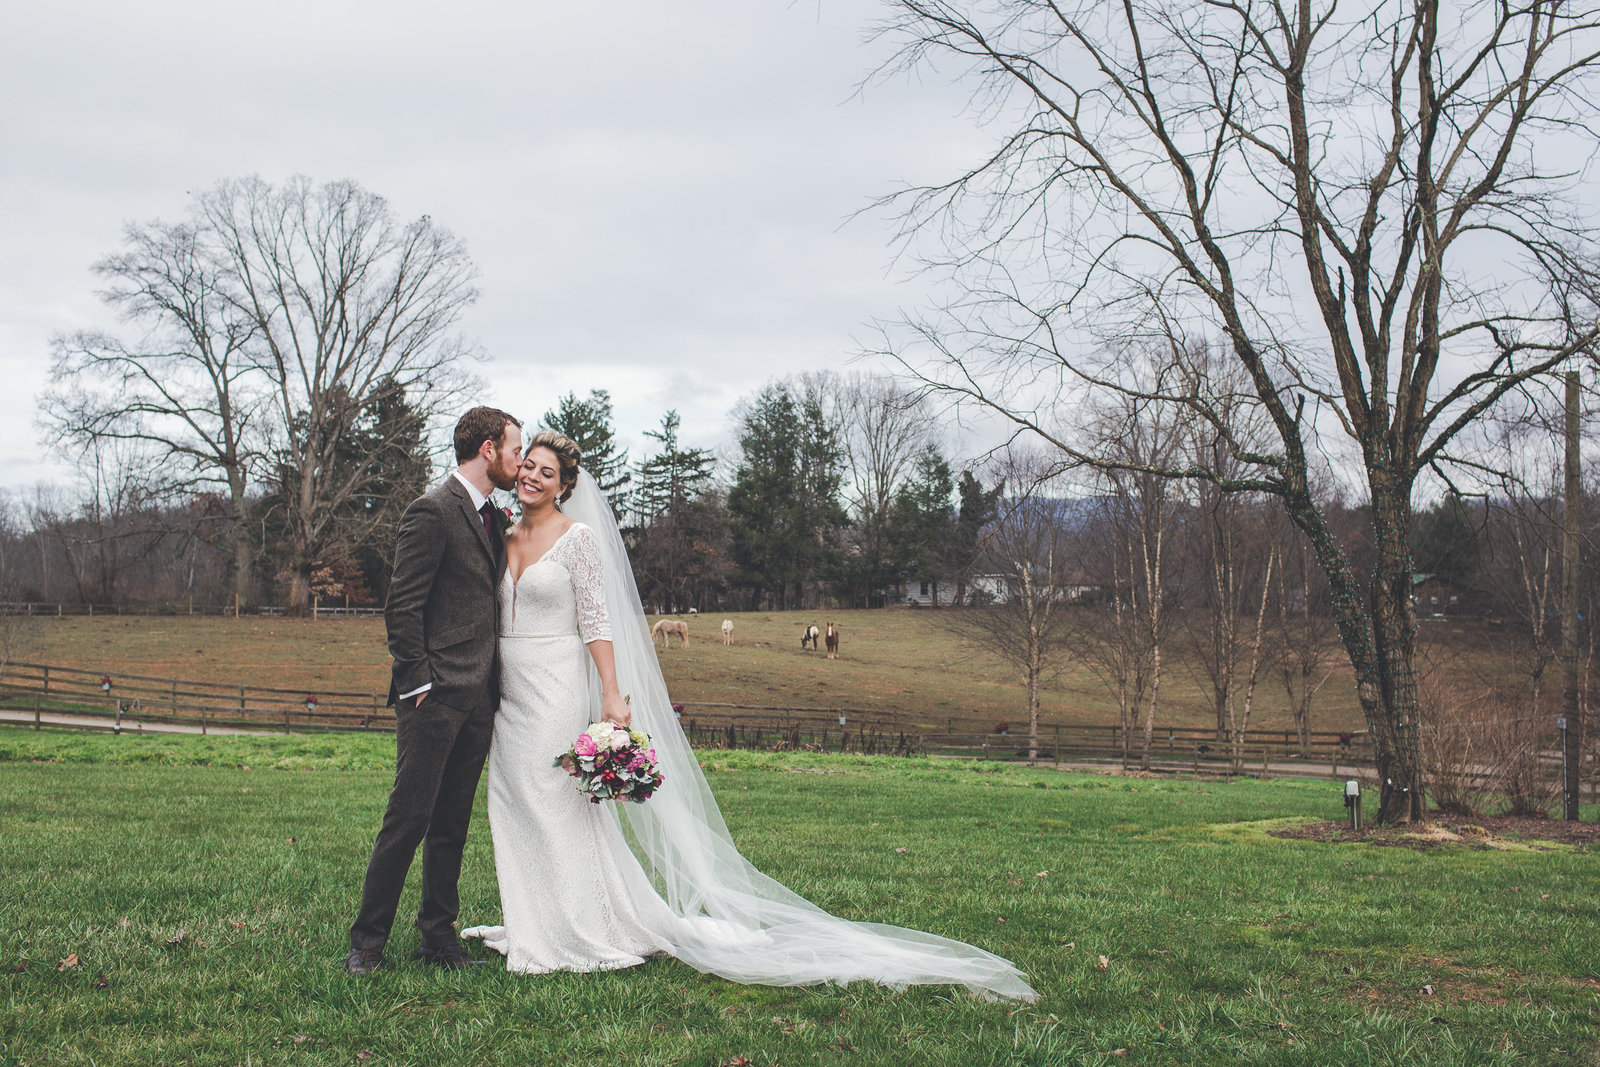 ashevilledestinationweddingphotographer_Biltmore_lifestyle_BrenPhotography_654